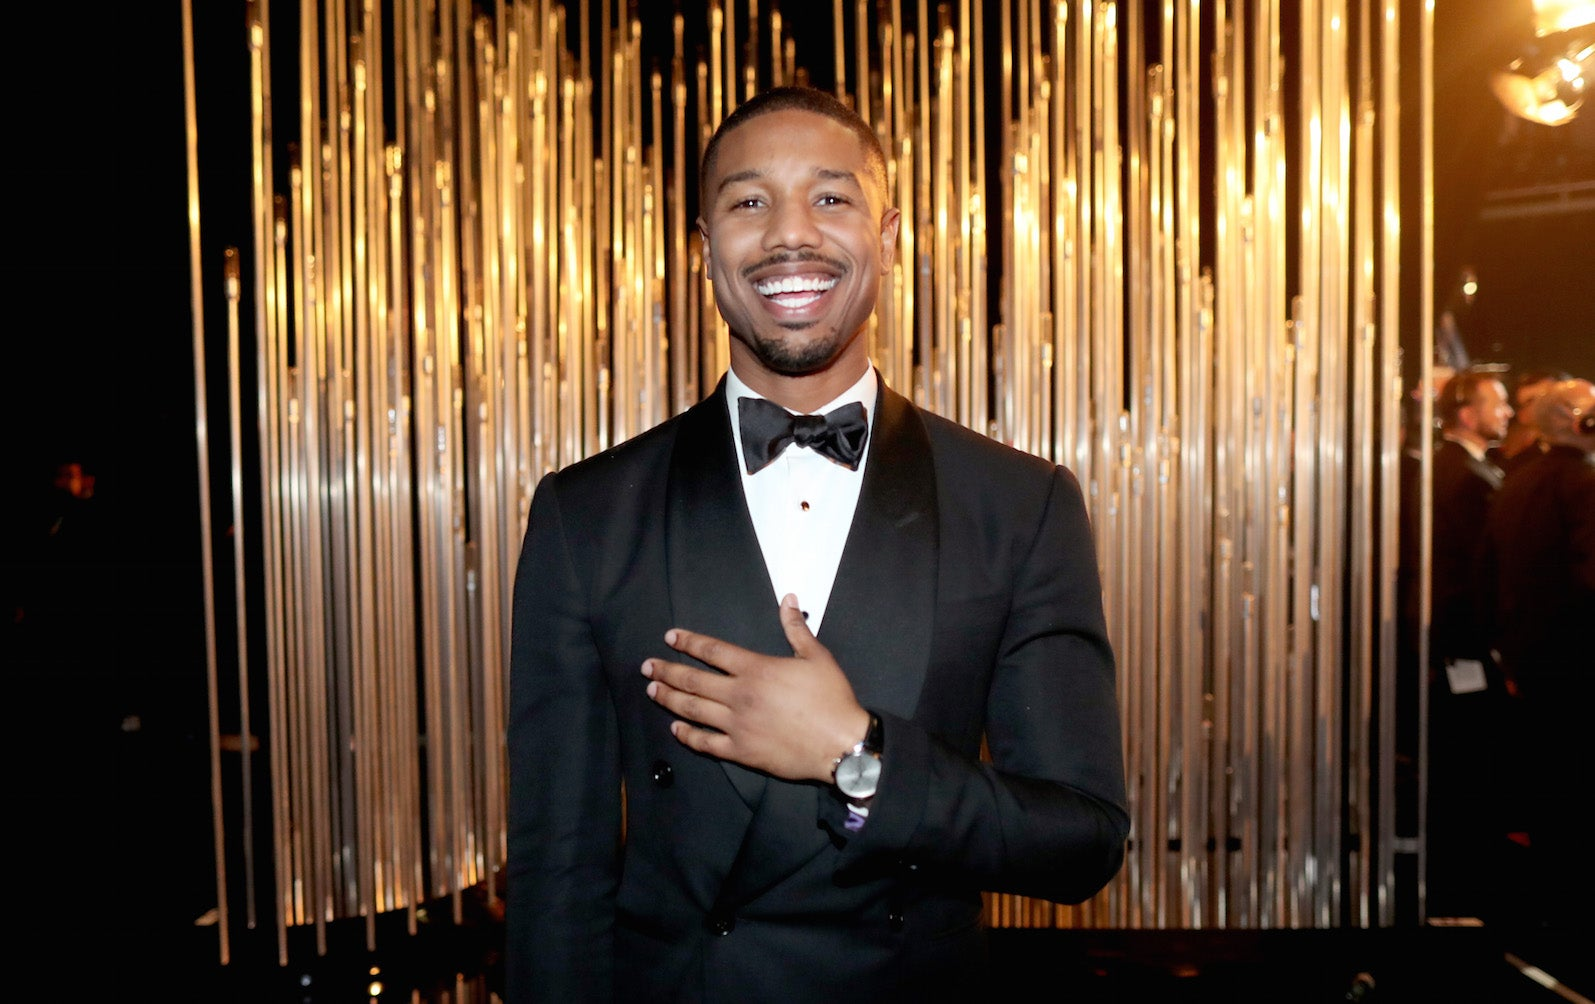 Michael B Jordan cast in Marvel's Black Panther | Films | Culture | The Independent